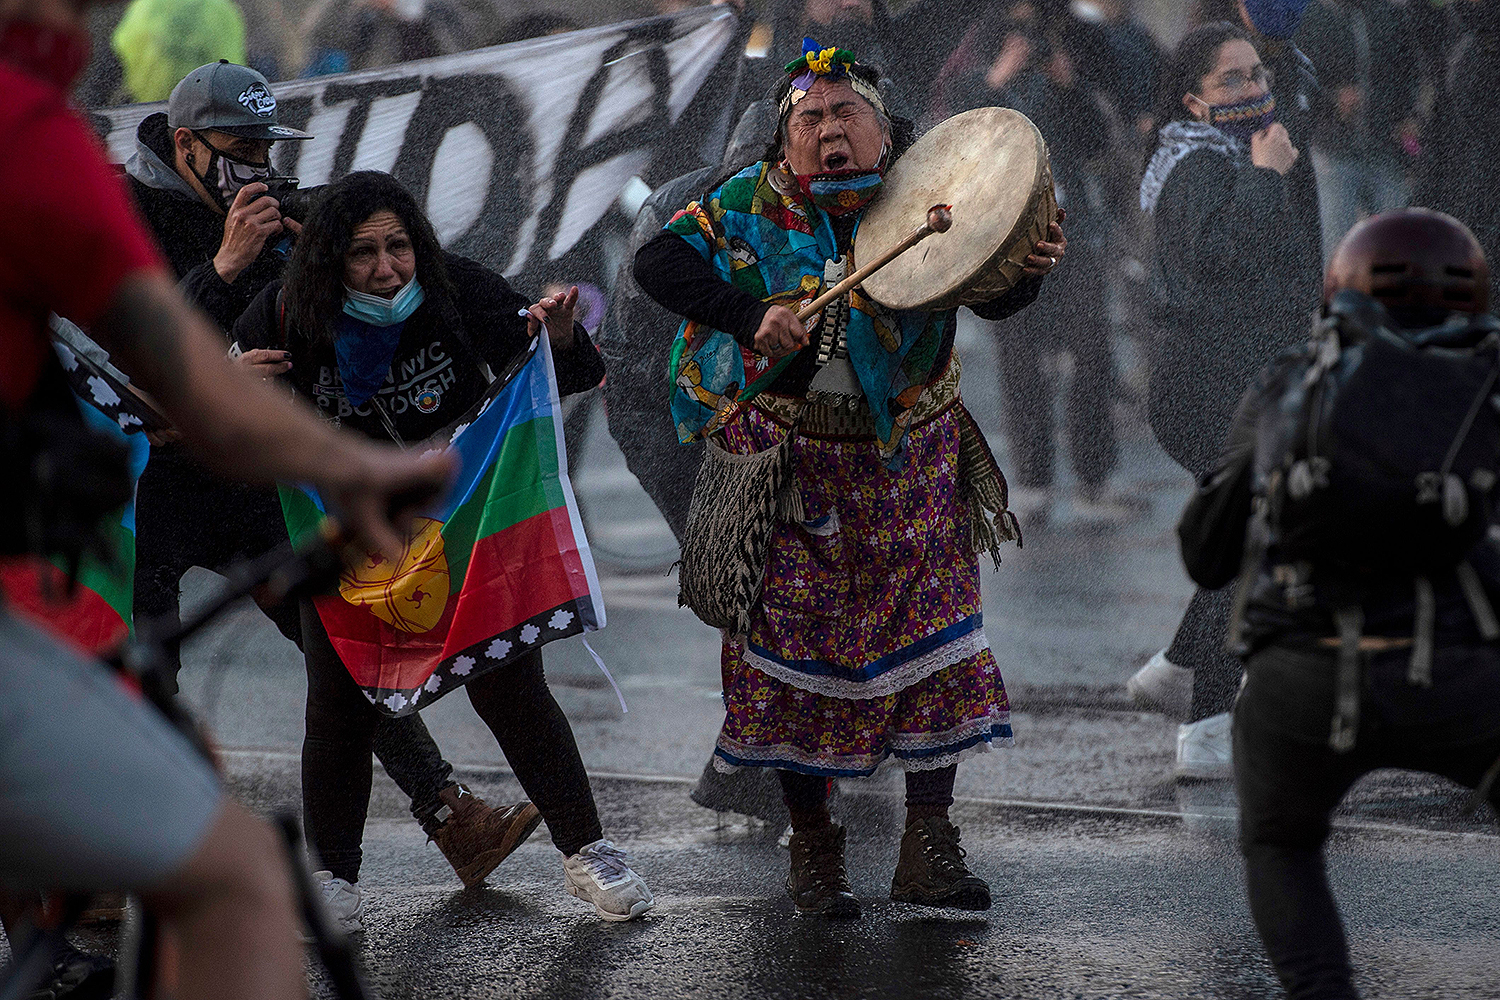 A Mapuche Indigenous woman plays a drum as riot police use water cannons to disperse demonstrators during a protest against the government's handling of the COVID-19 pandemic in Santiago, Chile, on Sept. 4. MARTIN BERNETTI/AFP via Getty Images